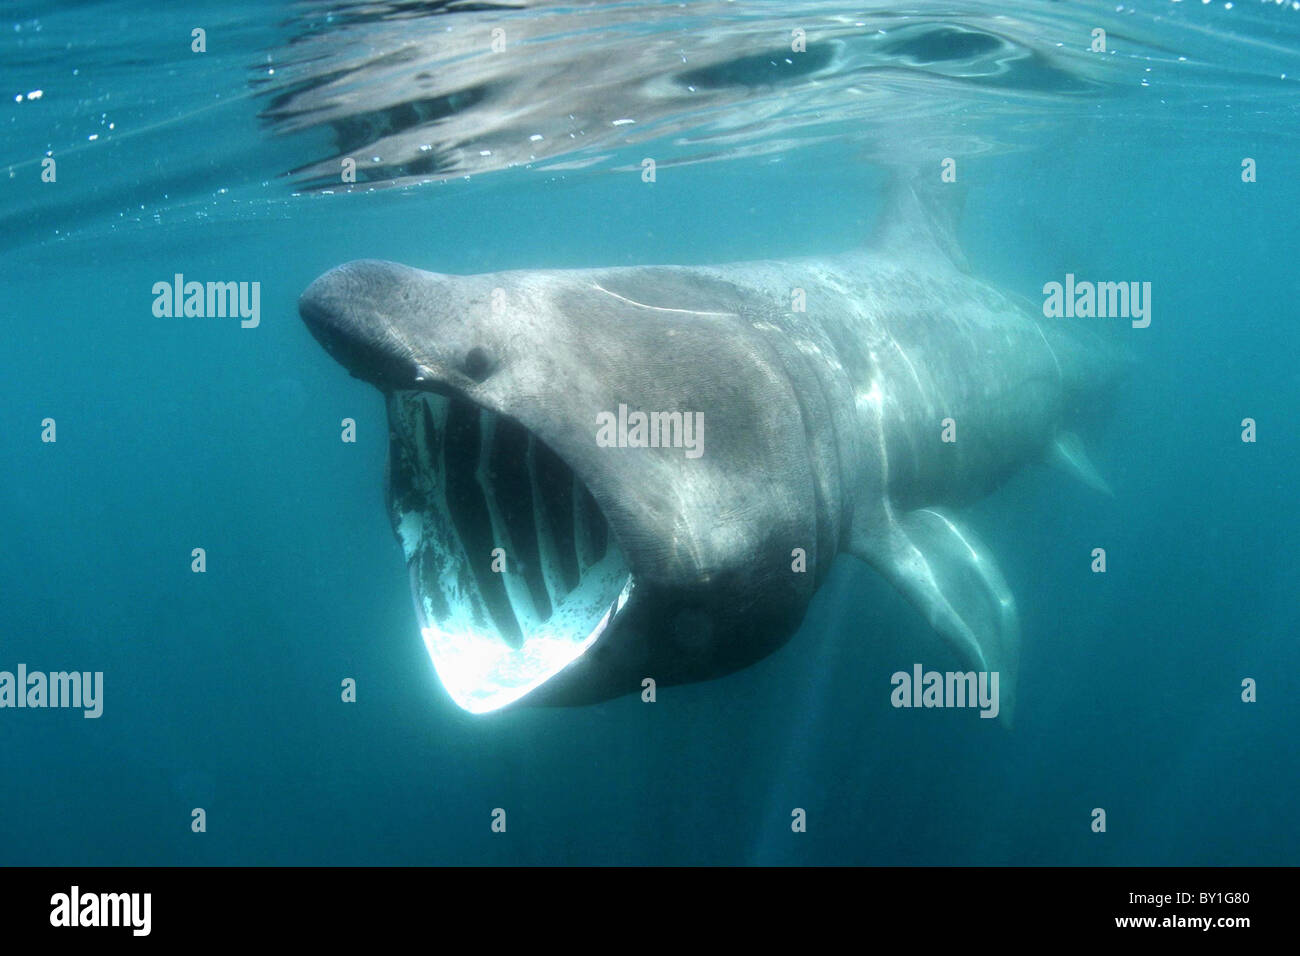 A basking shark feeding off the north coast of Cornwall - Stock Image